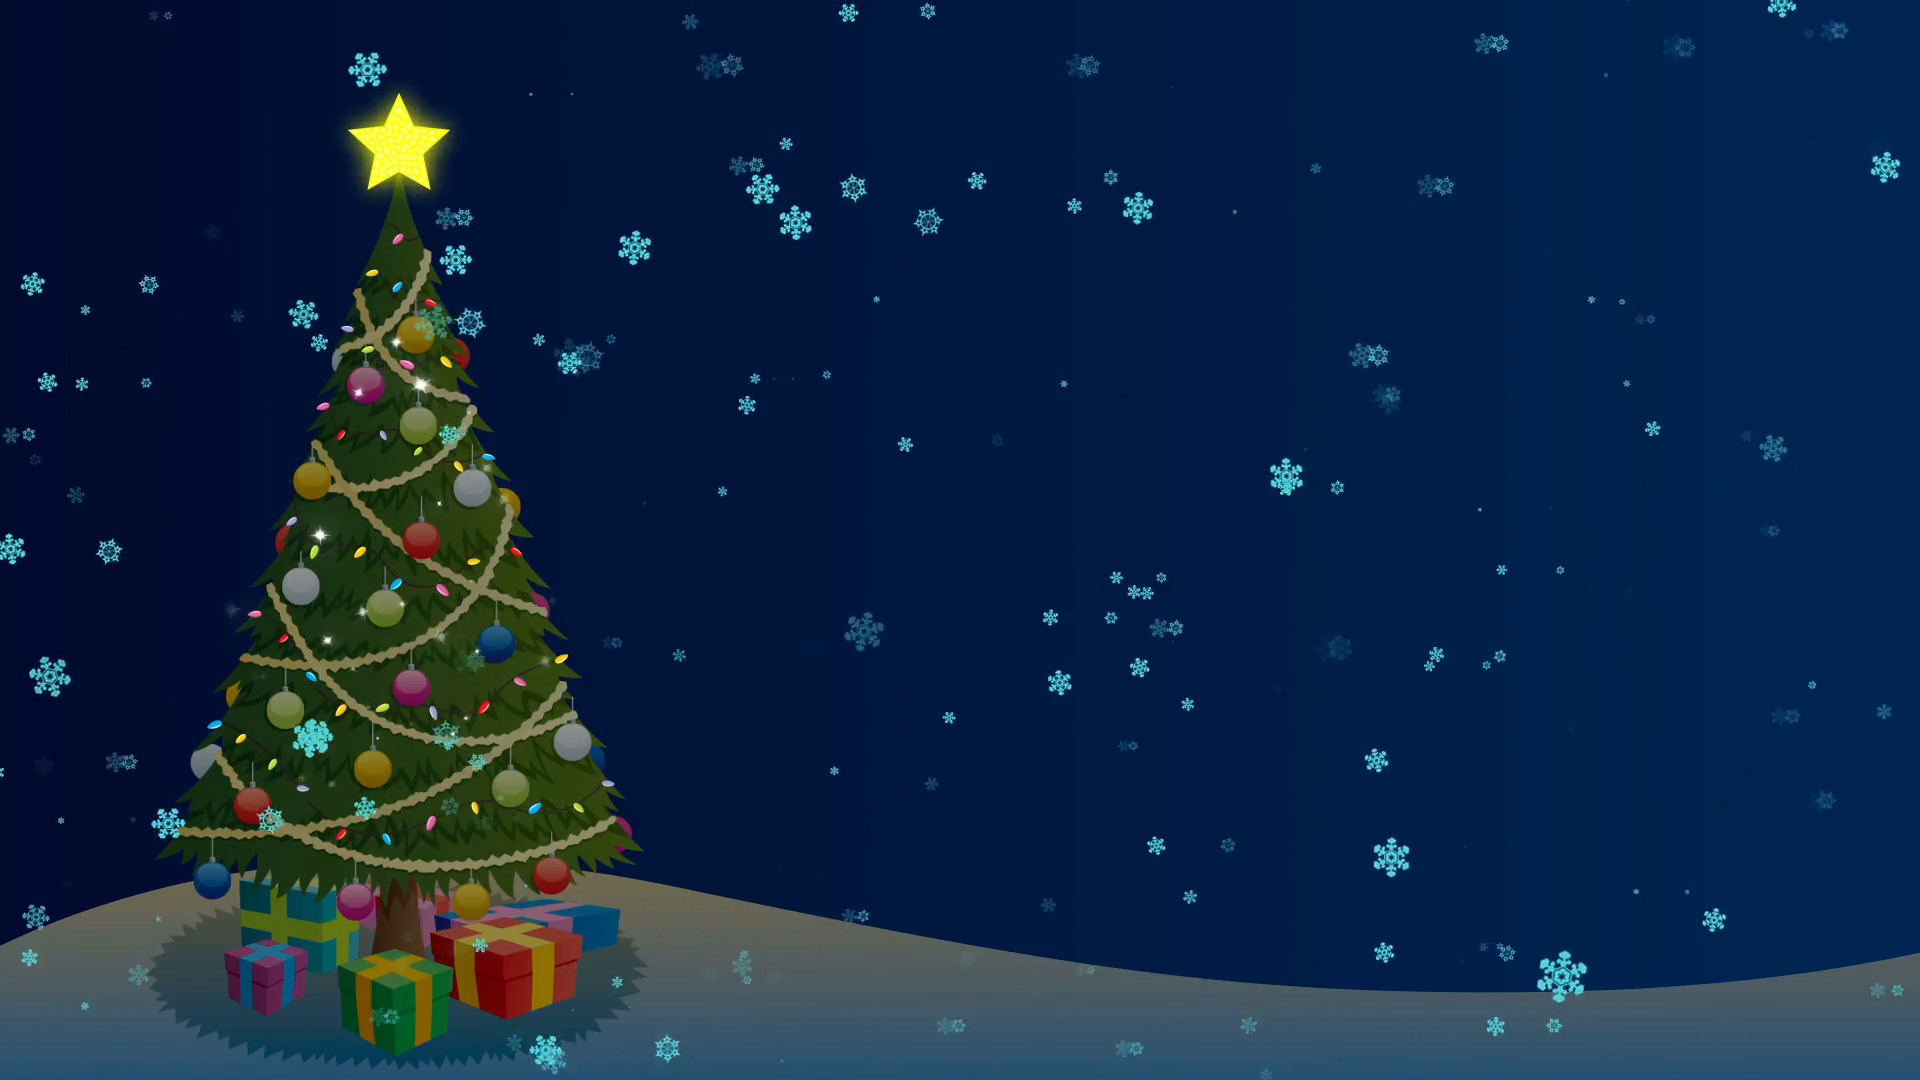 Snowy Christmas Backgrounds (48+ Images